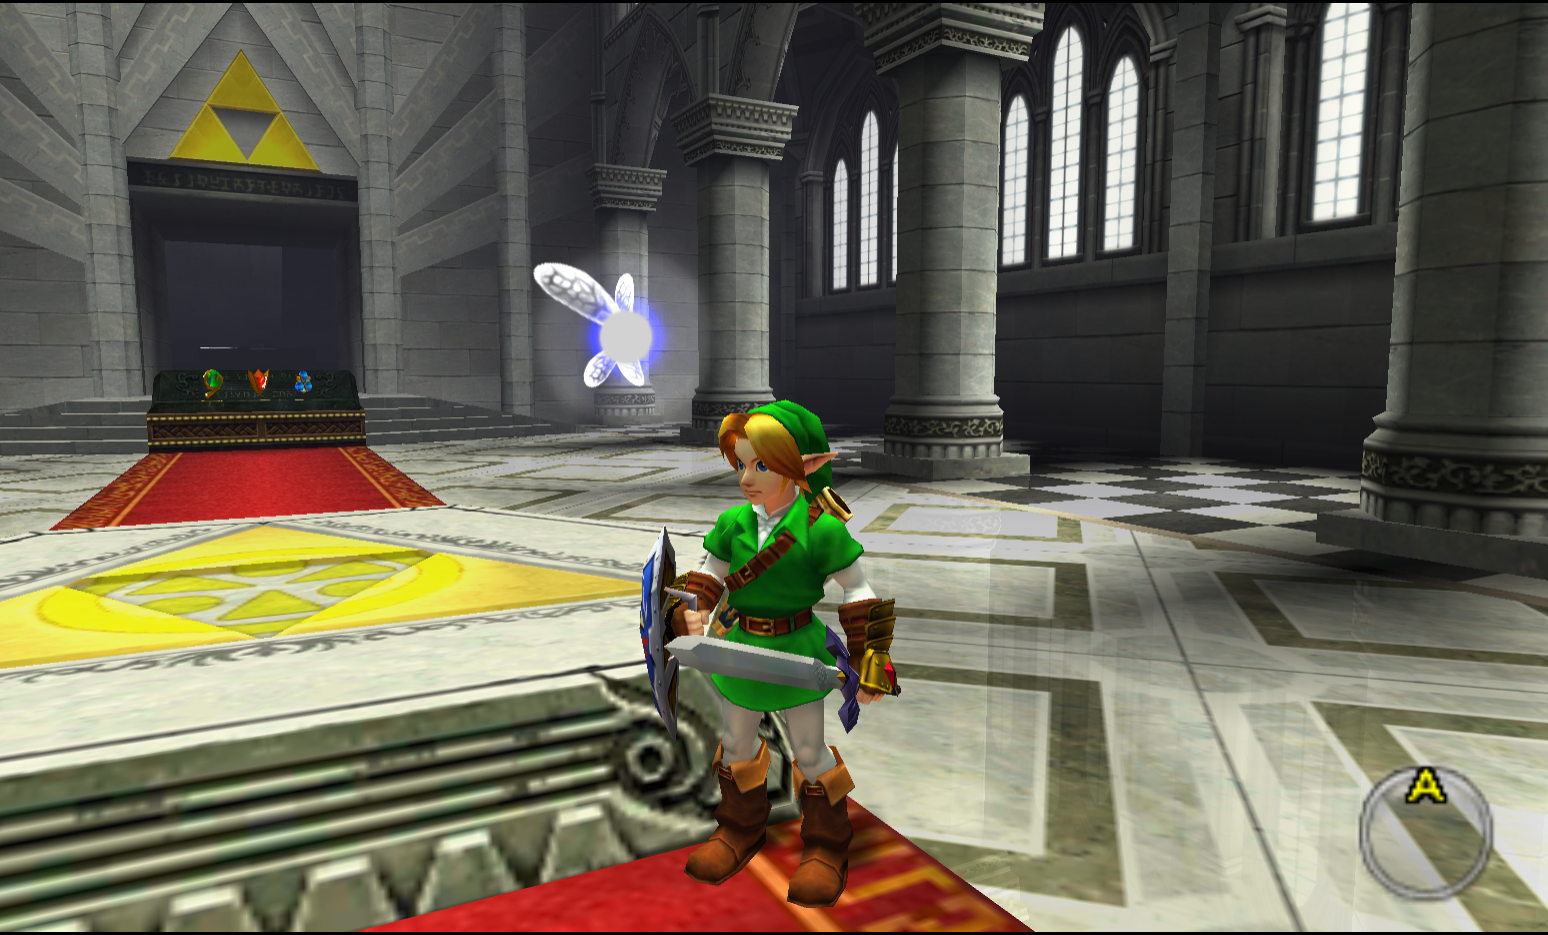 We may never get an HD-remake of Ocarina of Time but with